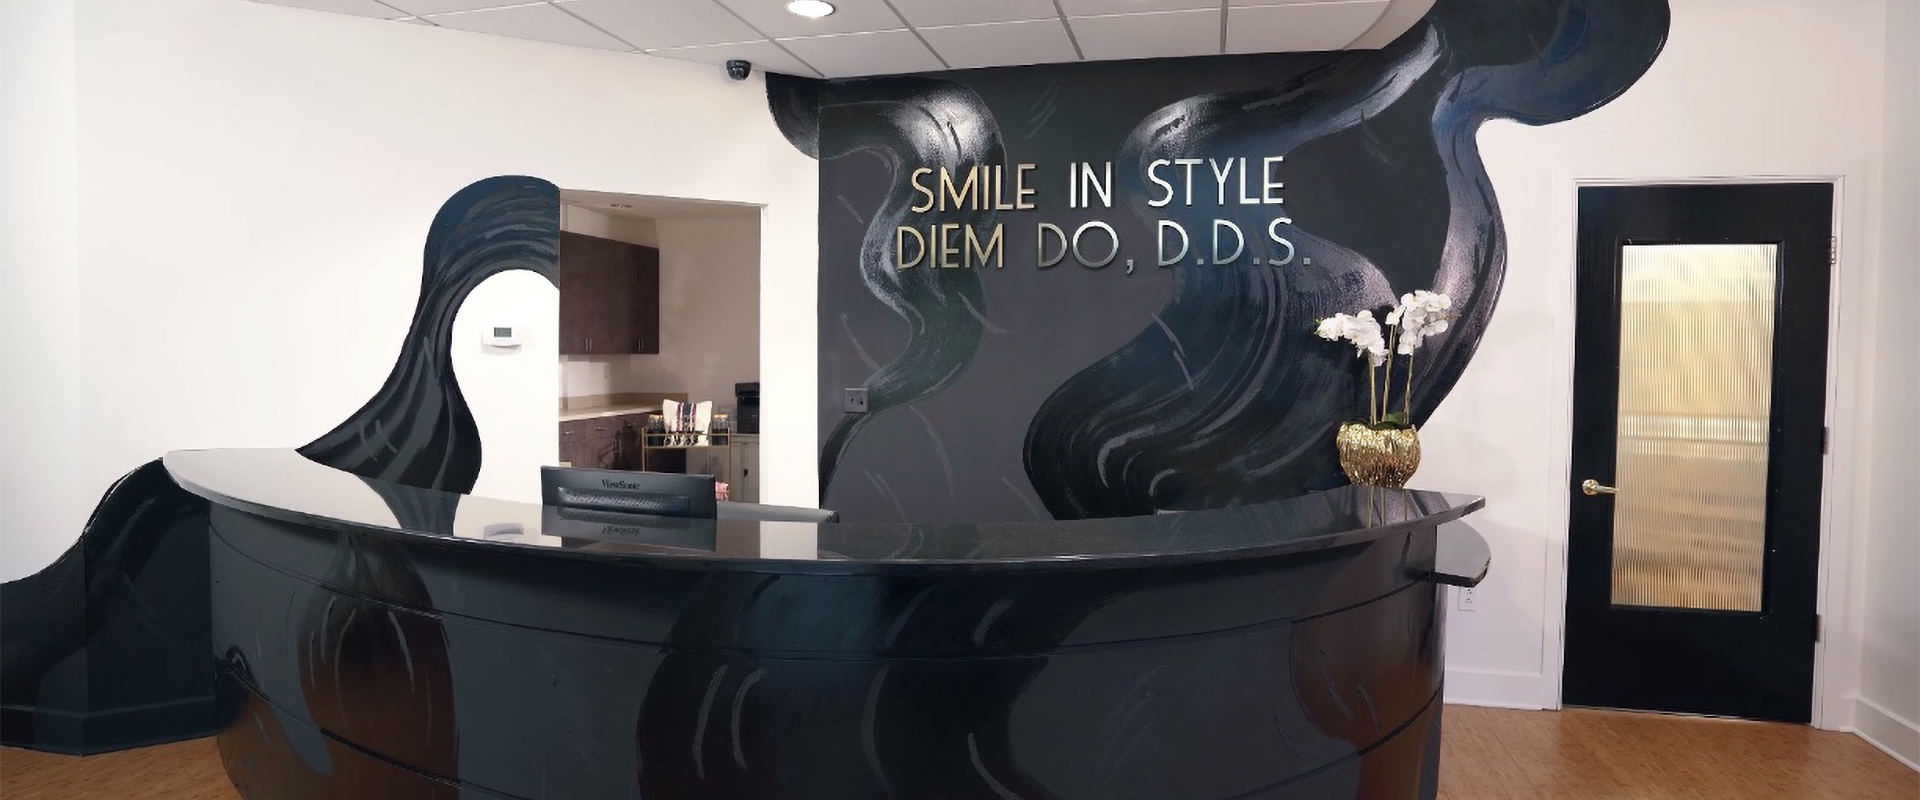 Diem Do, DDS Office Image